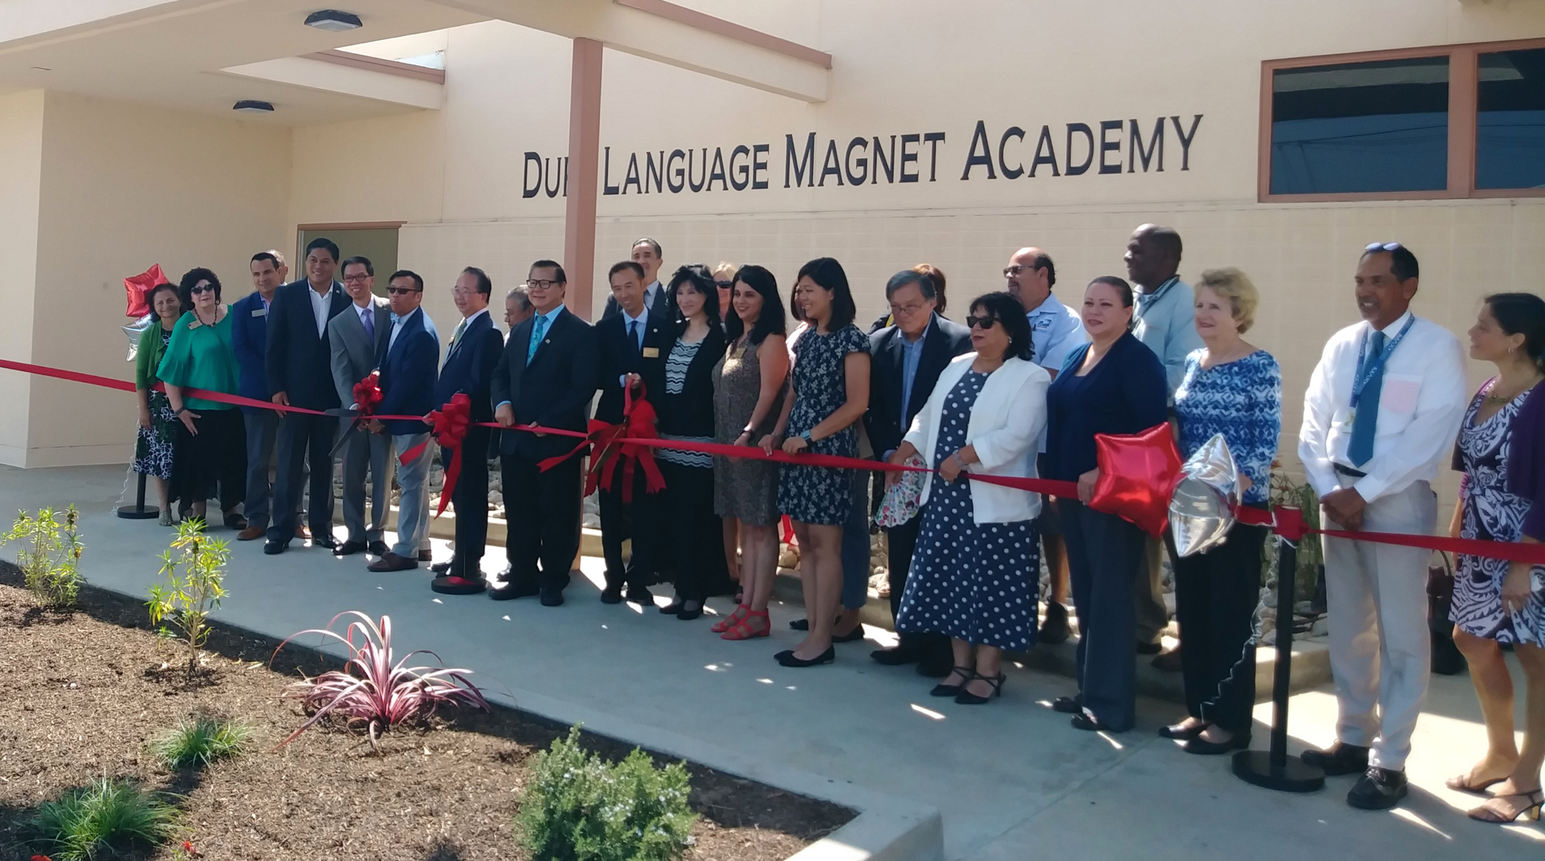 Duff Dual Language Magnet Academy Grand Re-Opening